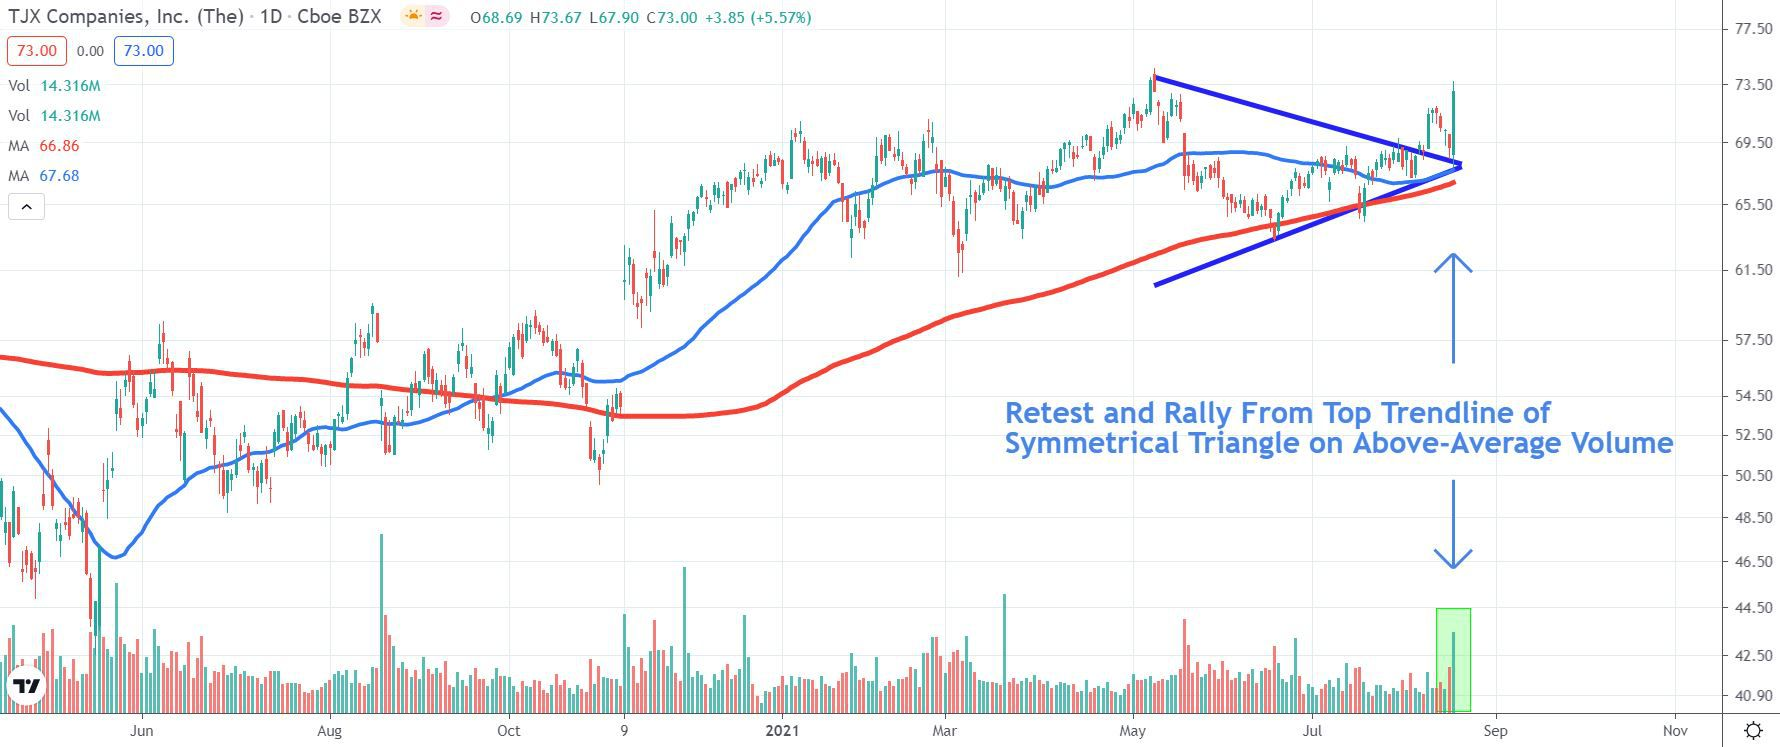 Chart depicting the share price of The TJX Companies, Inc. (TJX)